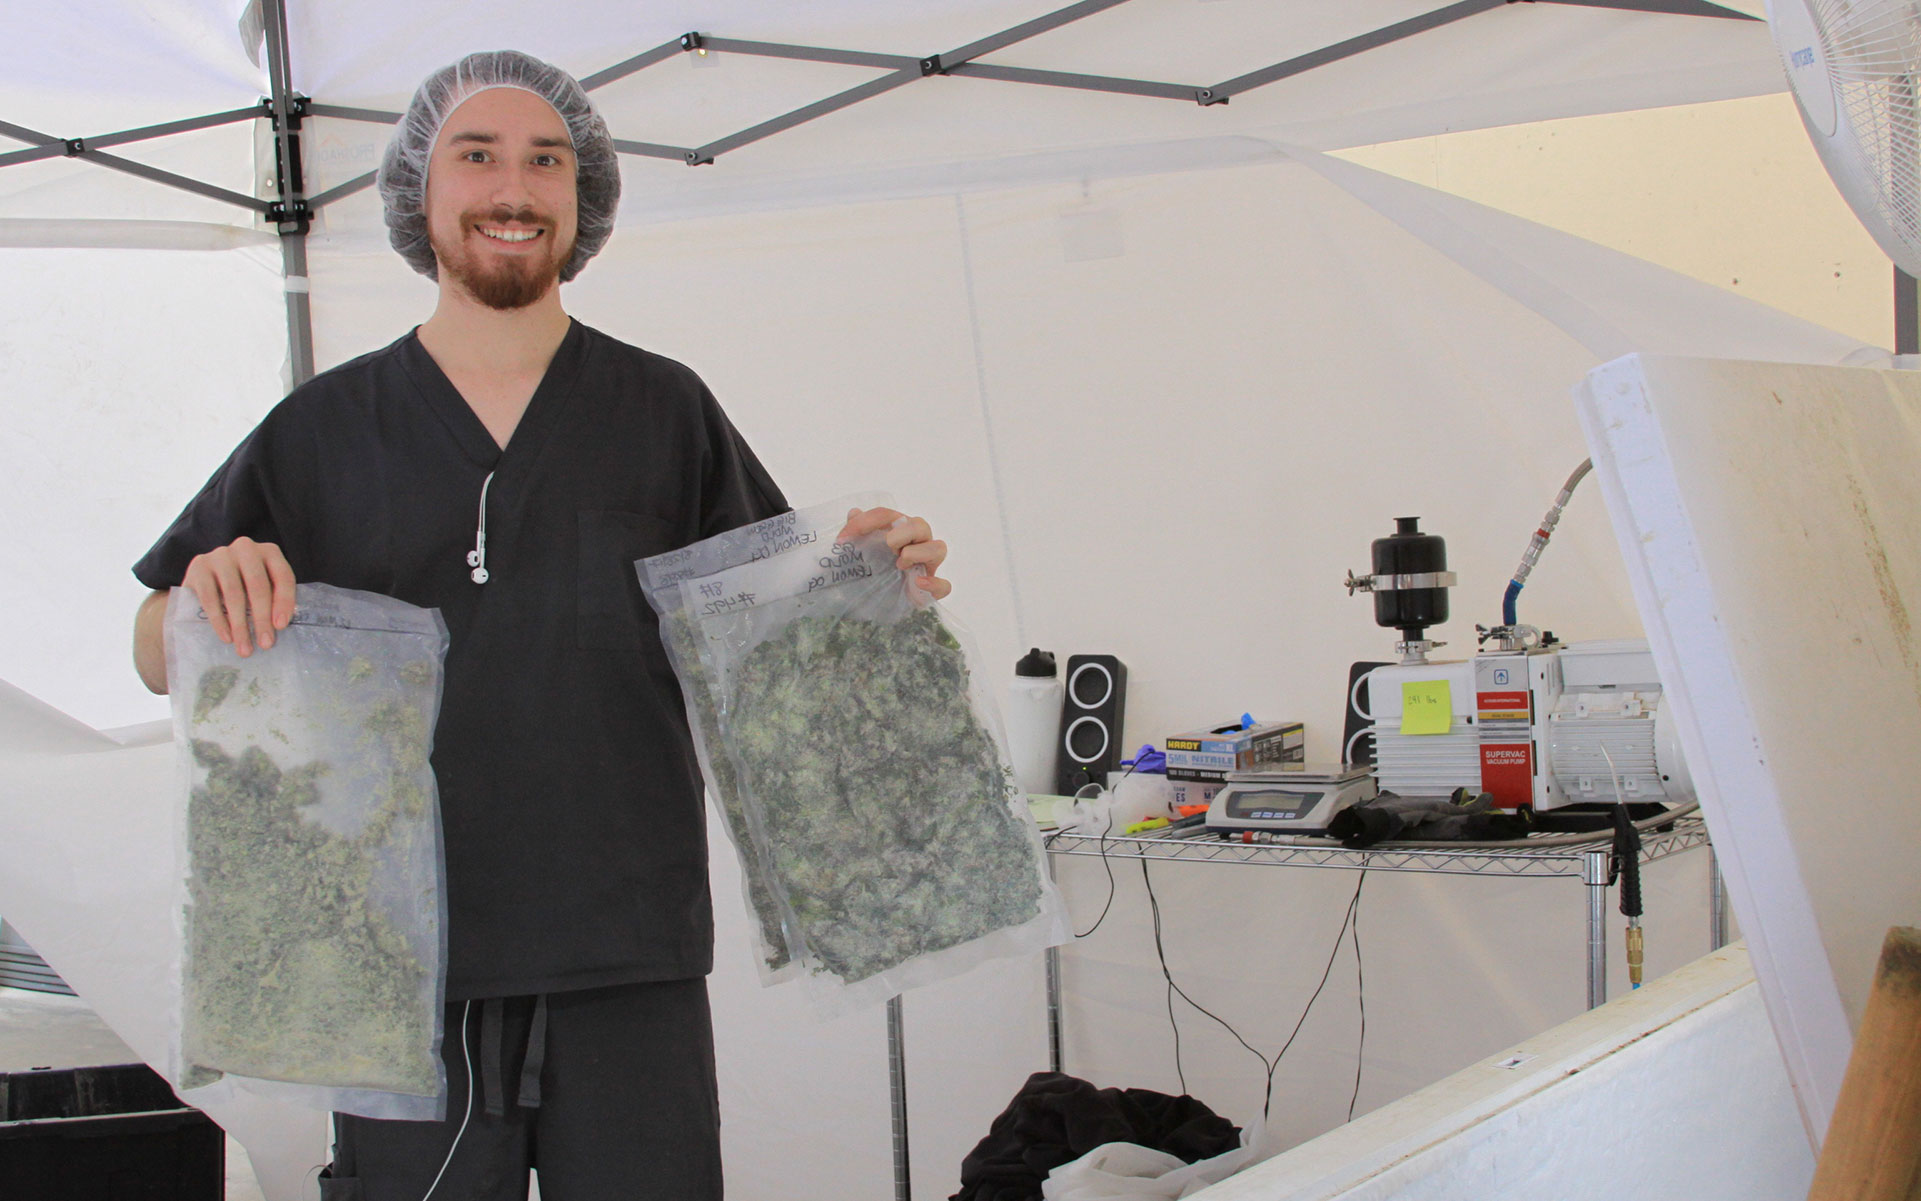 A Utopia Cannabis technician holds up bags of fresh-frozen cannabis. (Courtesy of Utopia Cannabis)